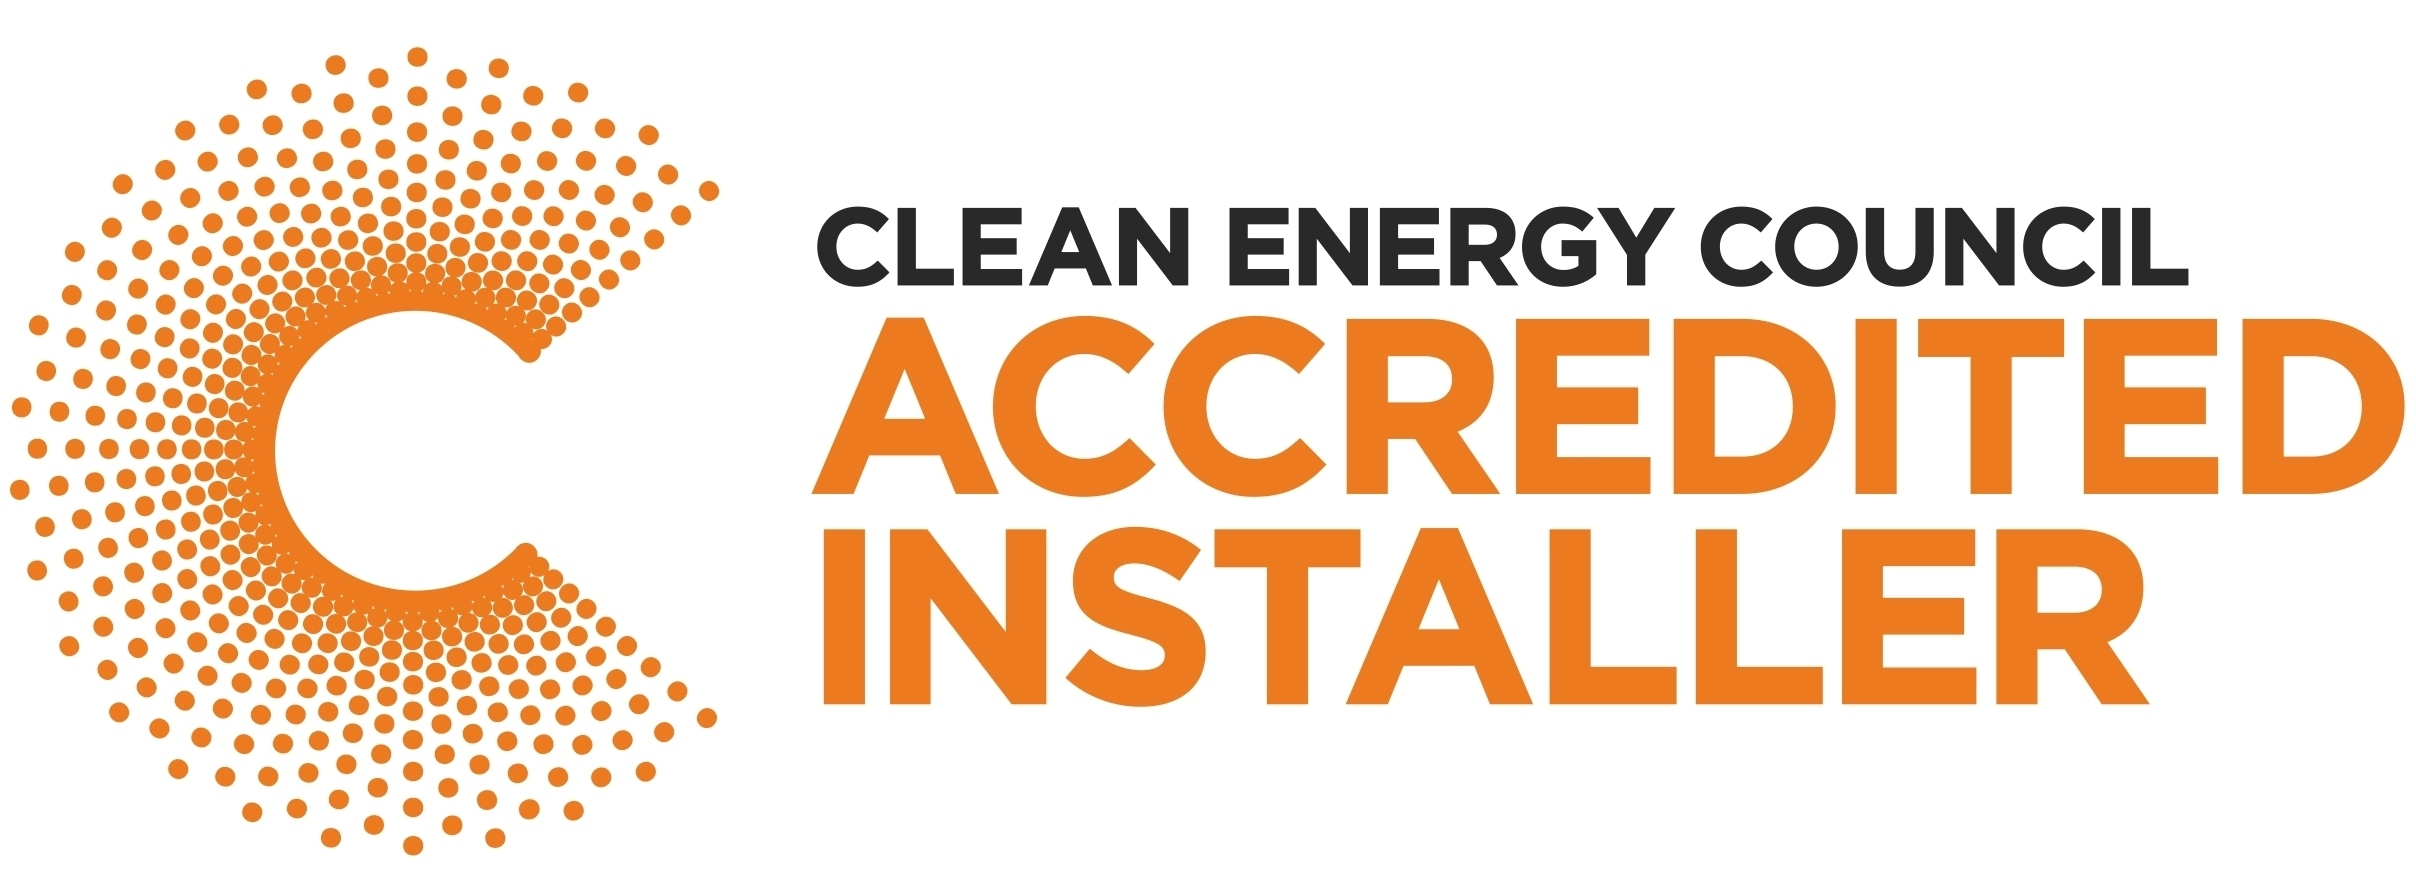 Clean Energy Council Accredited Installer Logo